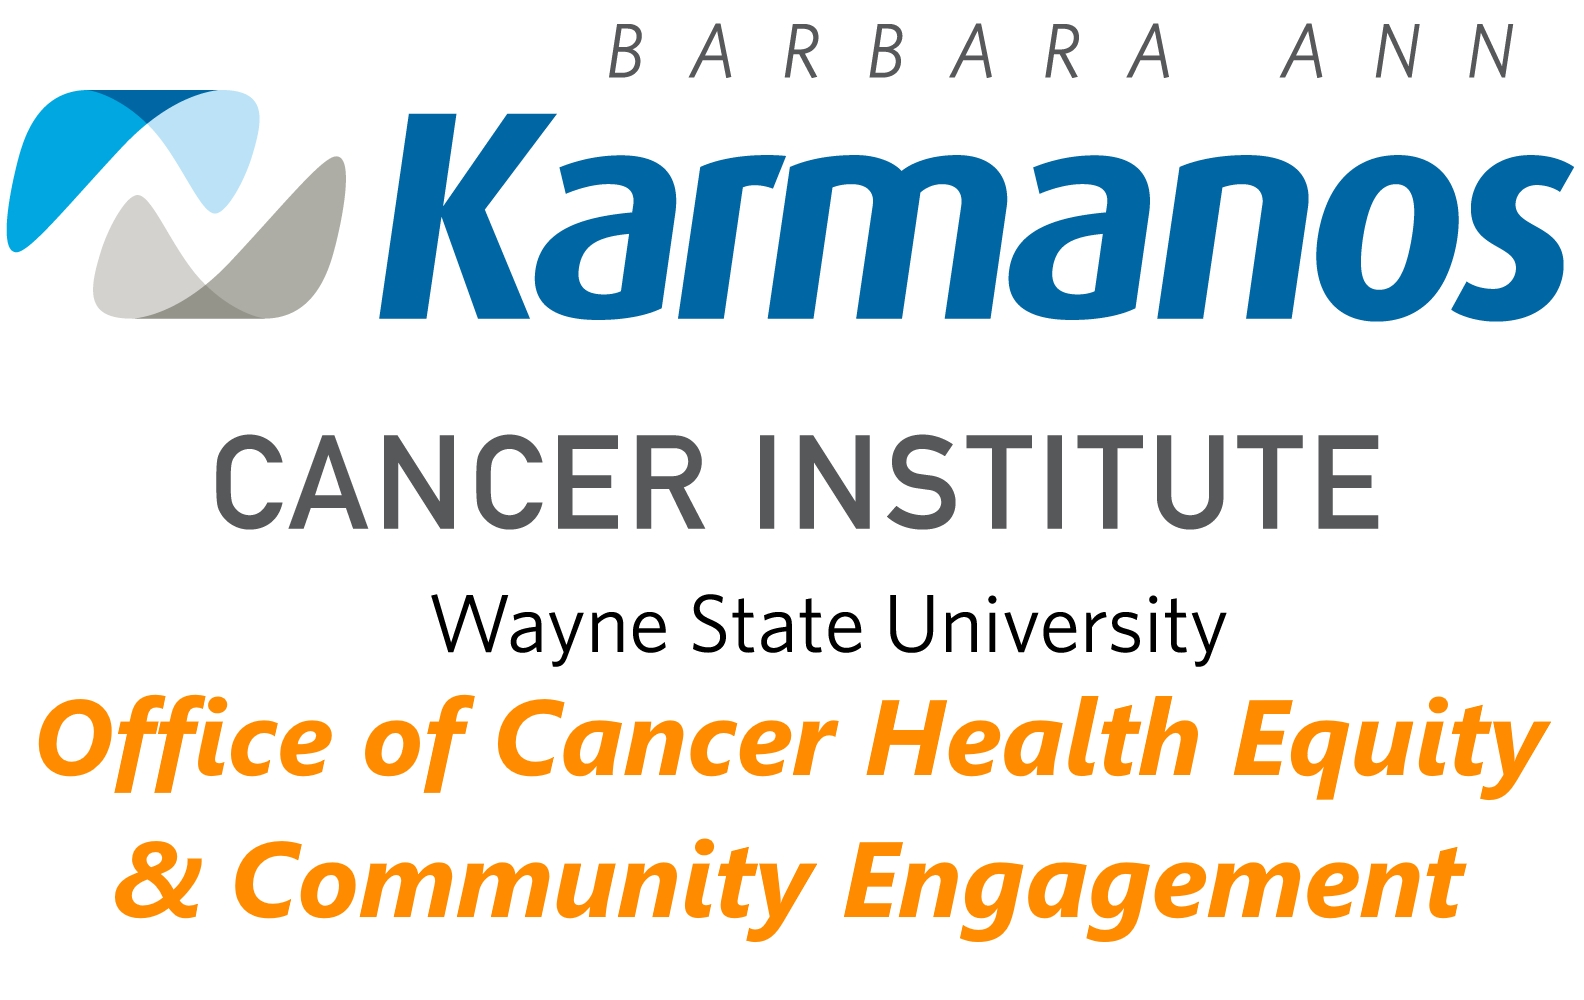 Karmanos Cancer Institute - Office of Cancer Health Equity & Community Engagement (OCHECE)